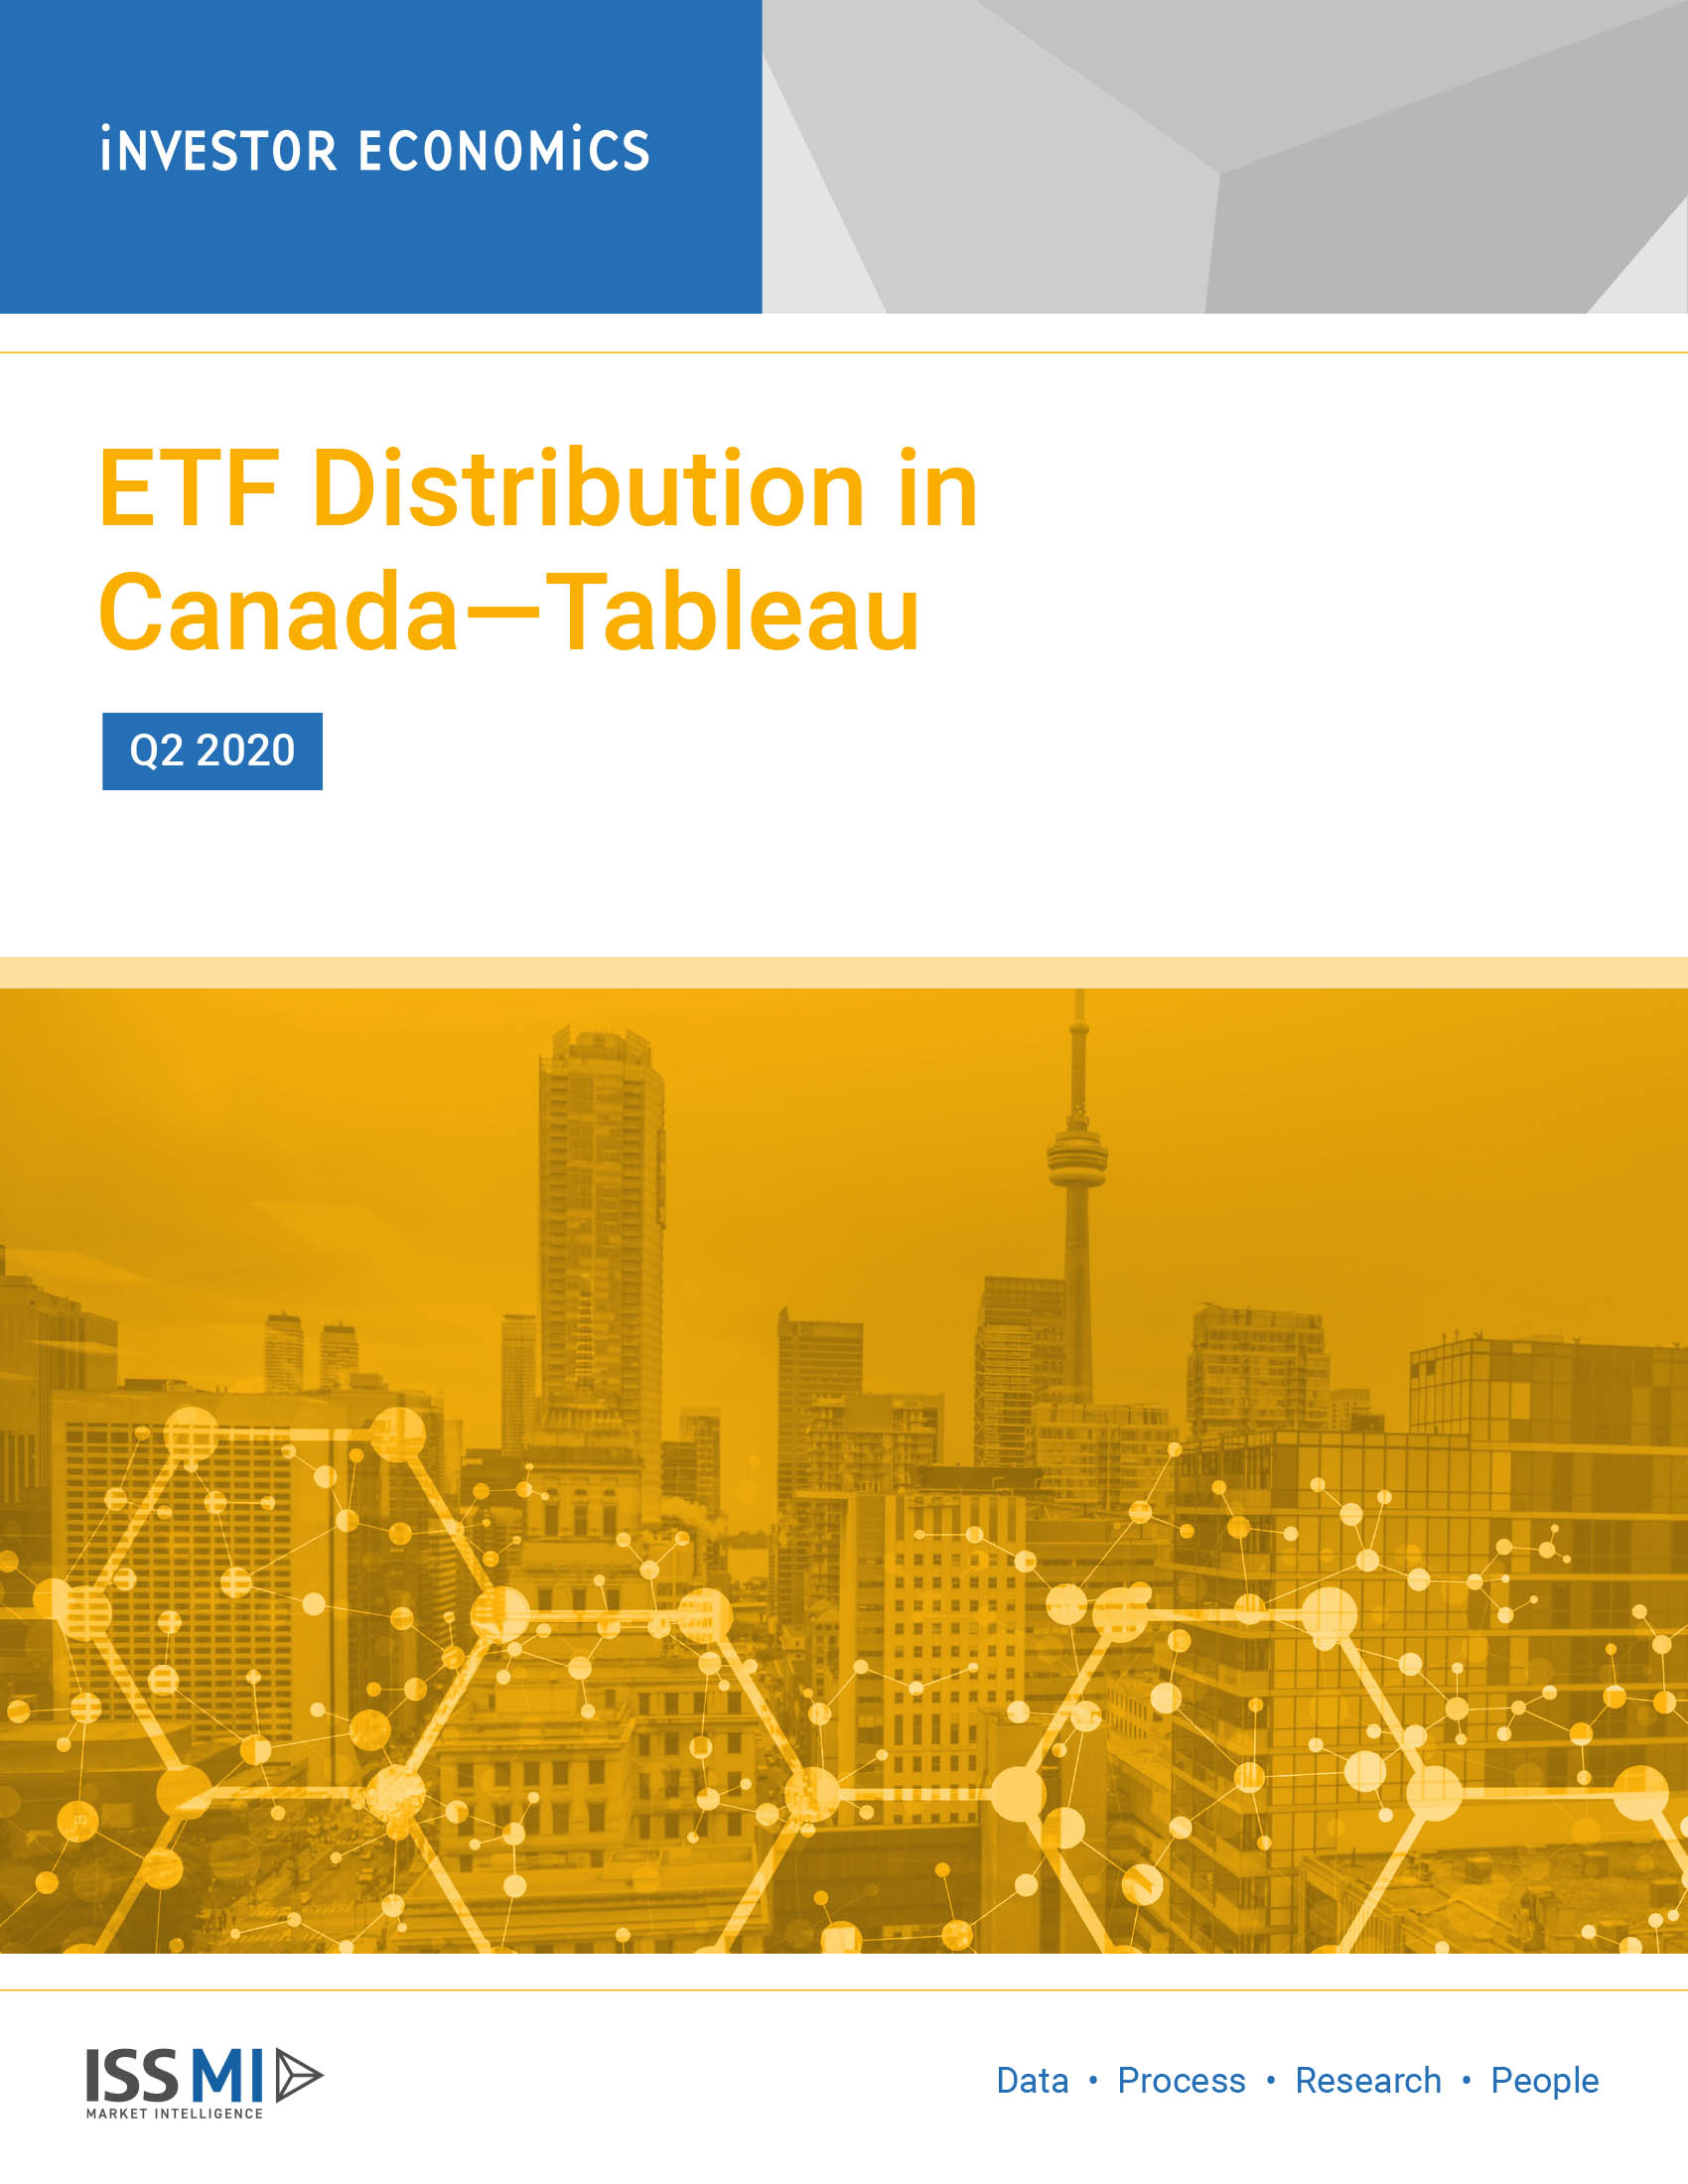 ETF Distribution in Canada—Tableau Q2 2020